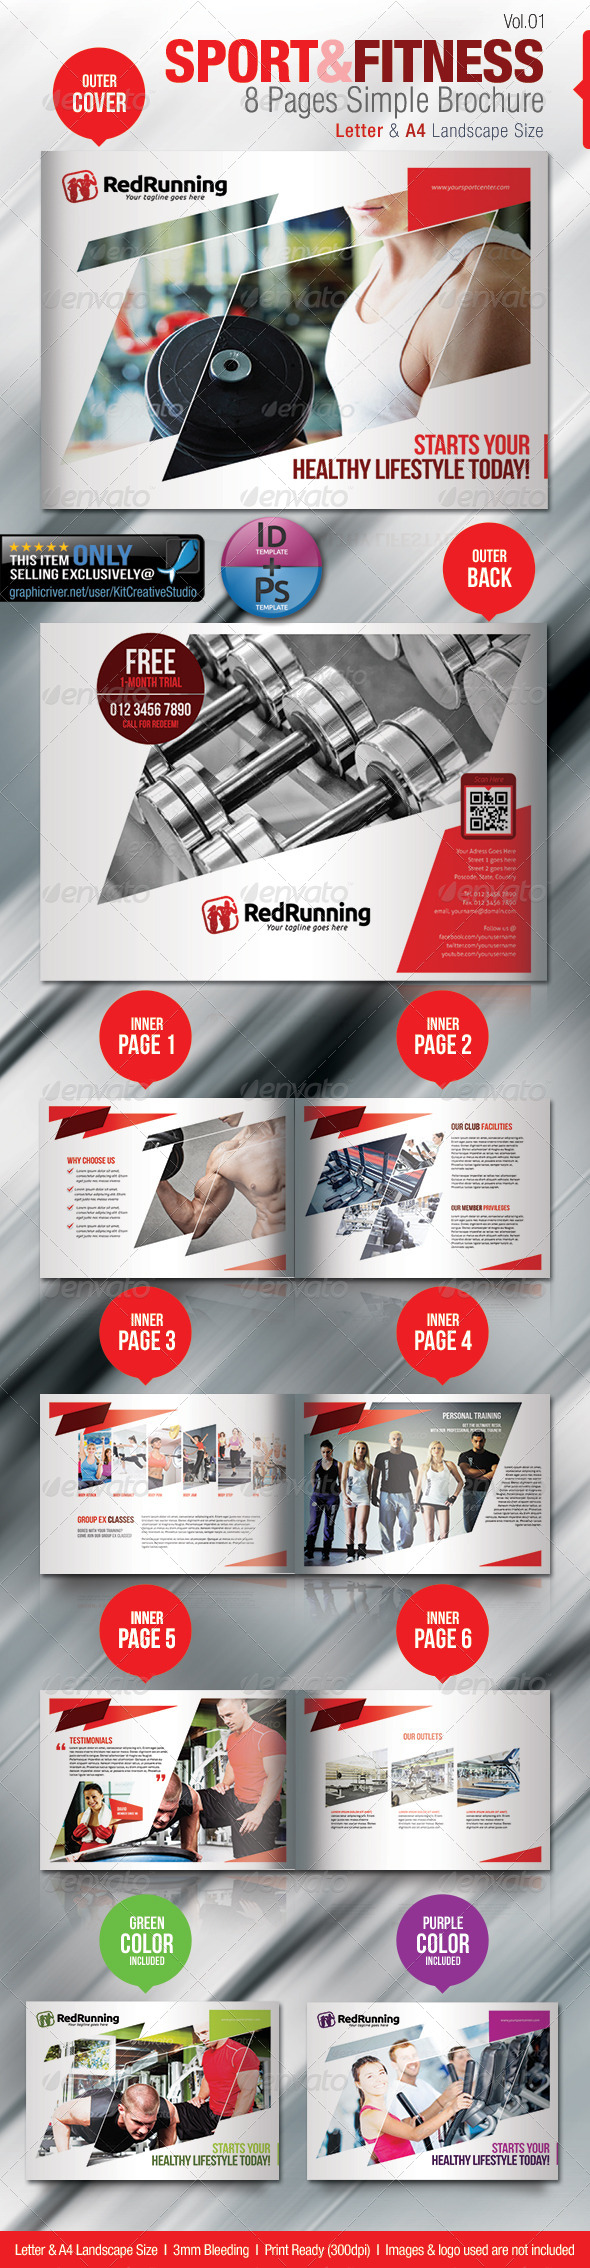 Fitness & Sport 8 Pages Simple Brochure - Brochures Print Templates